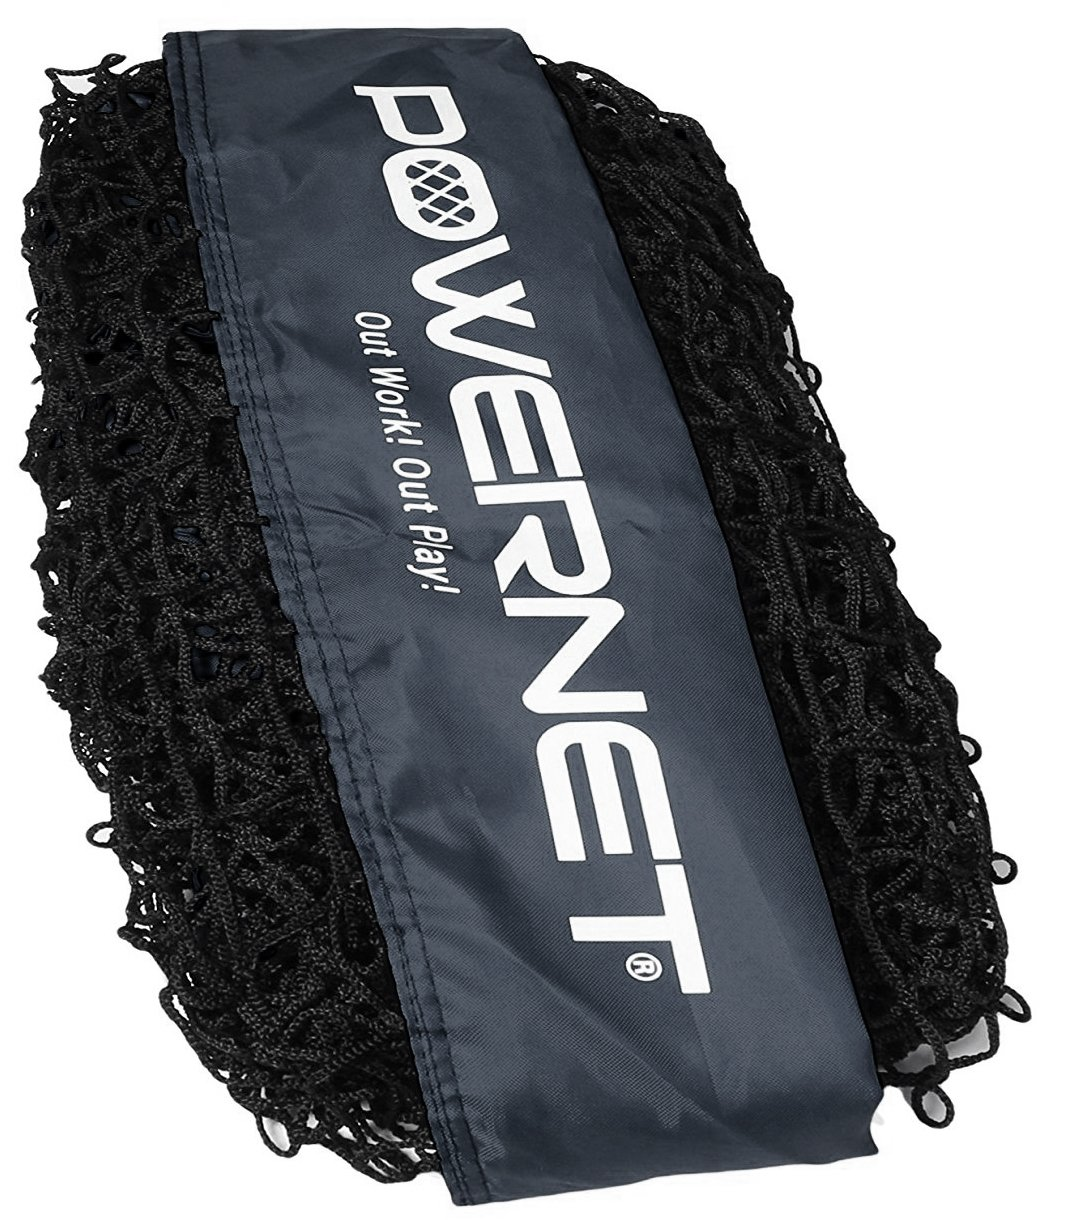 PowerNet Team Color Nets Baseball and Softball 7x7 Bow Style (NET ONLY) Replacement | Team Colors | Heavy Duty Knotless | Durable Black PU Coated Polyester | Double Stitched Seams for Extra Strength by PowerNet